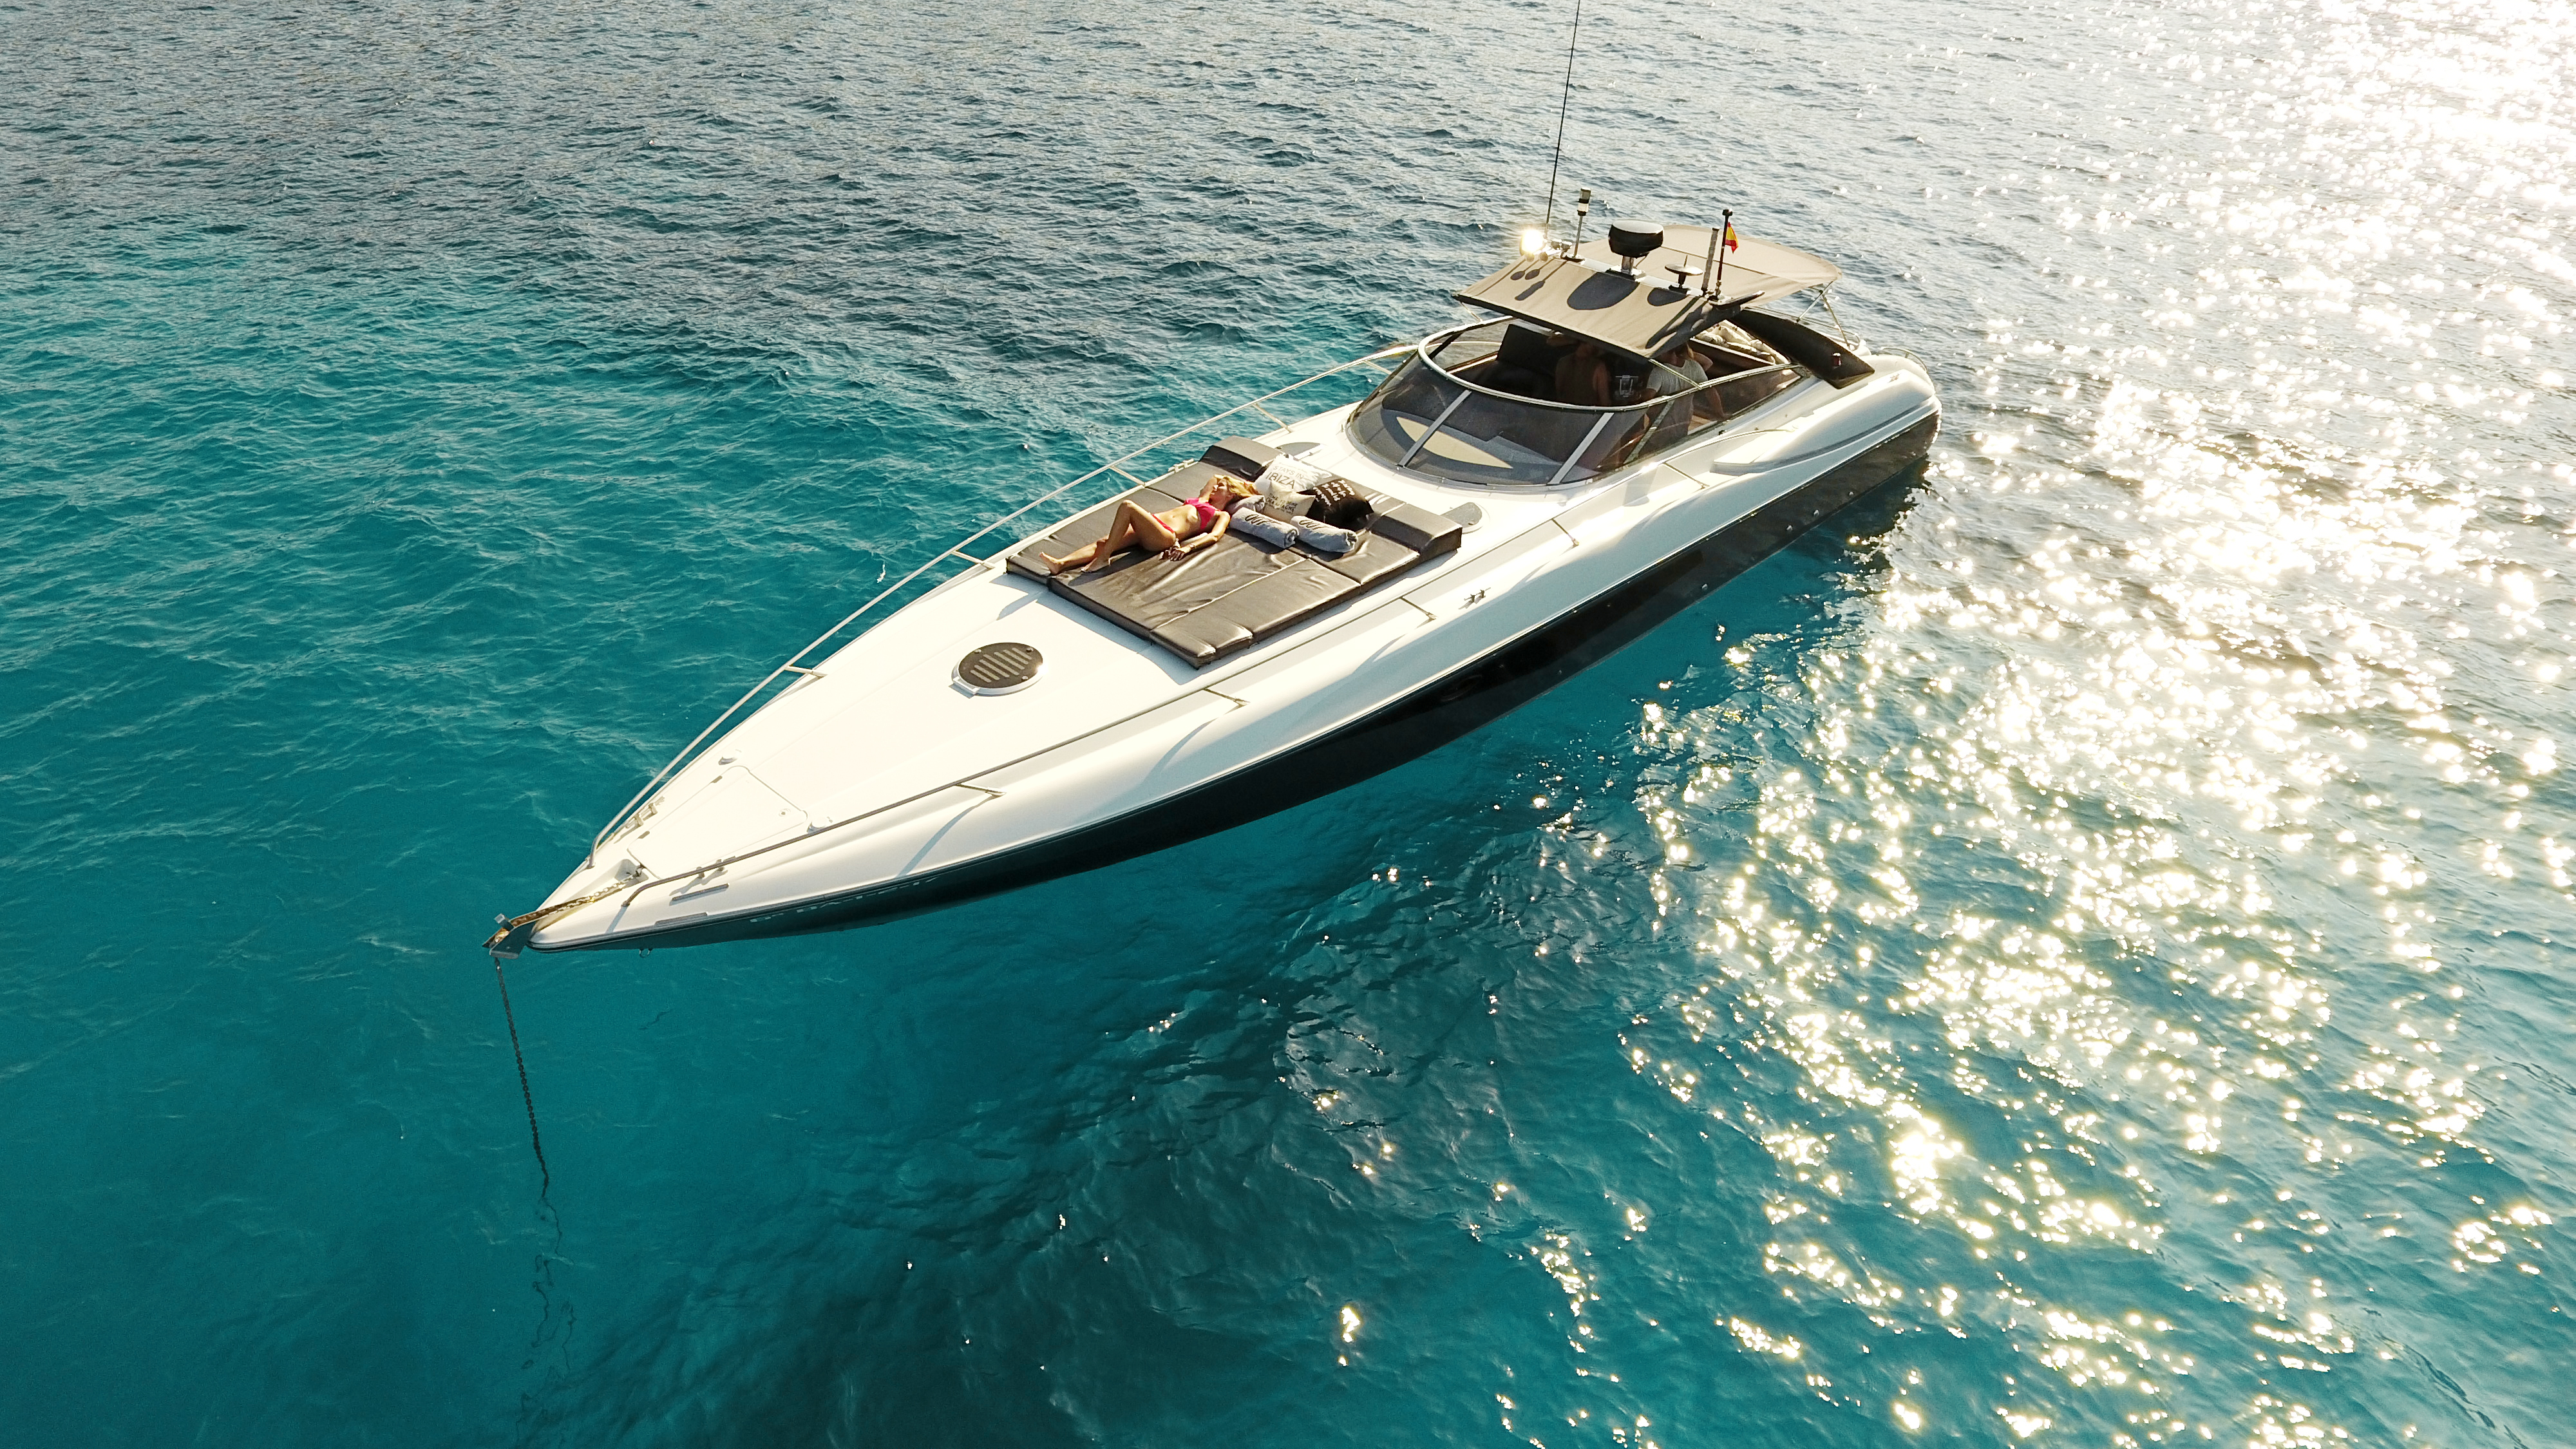 007 Sunseeker Superhawk 48  Day charter in Marina Ibiza  Luxury yacht